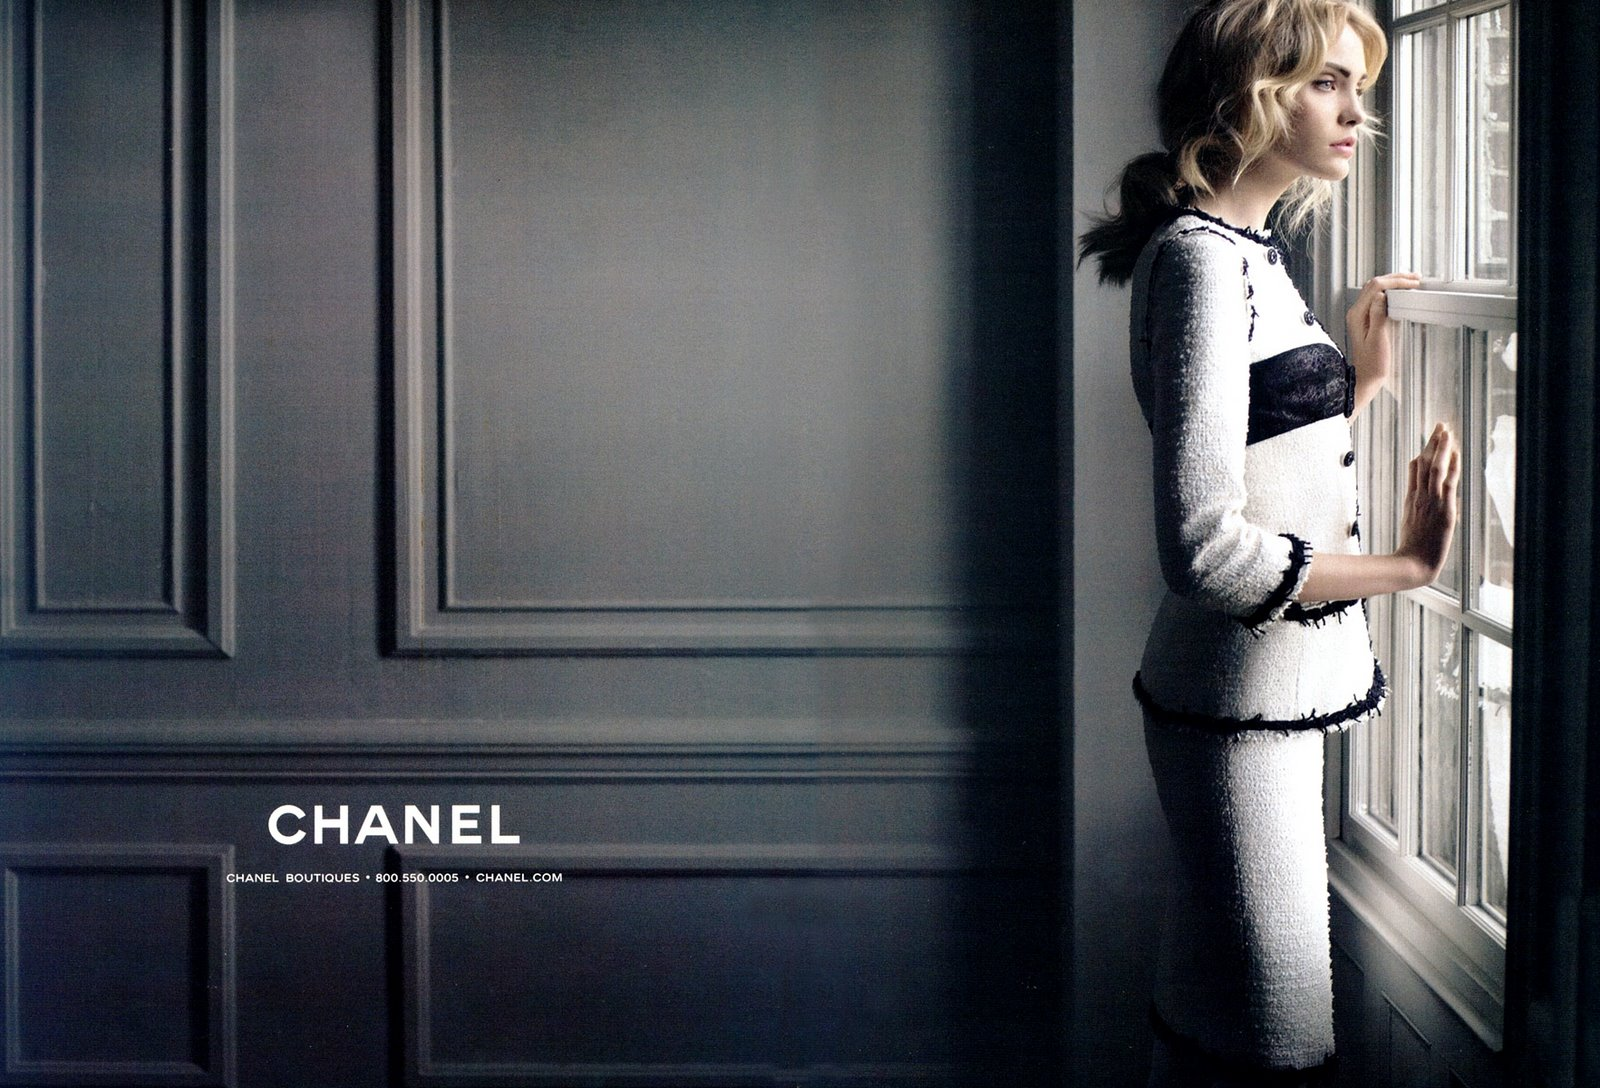 chanel | Euro Palace Casino Blog